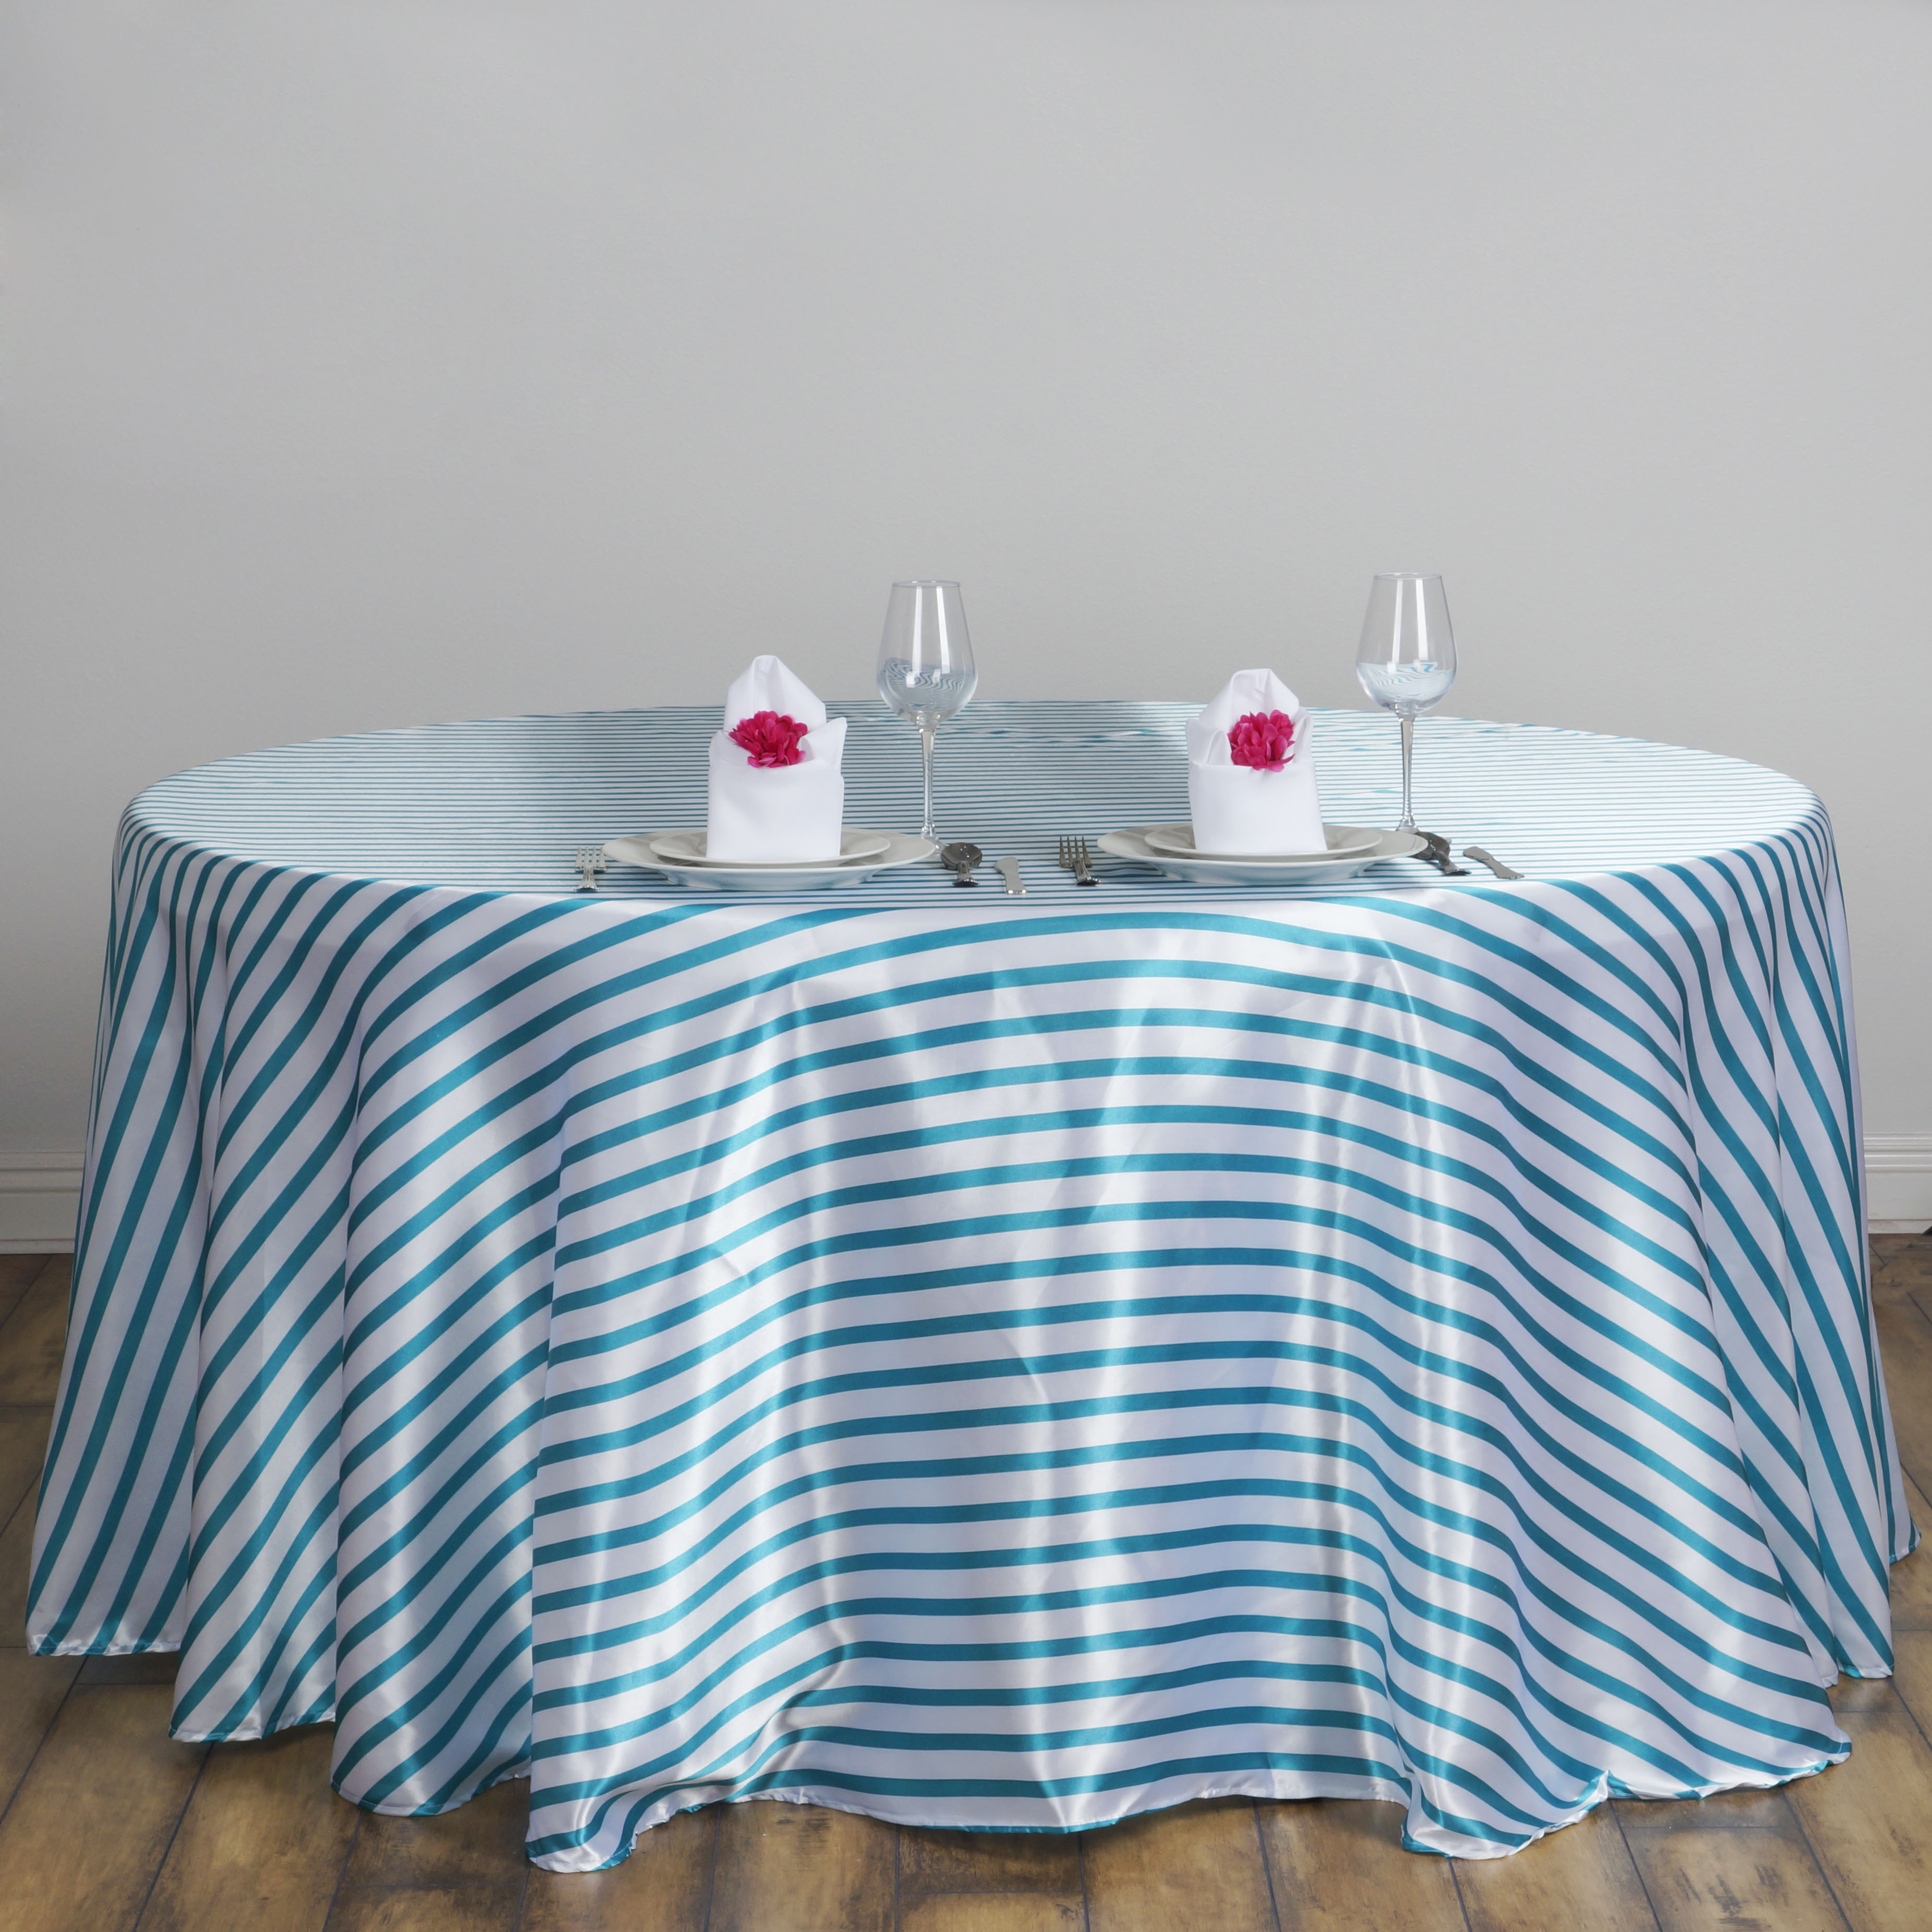 "Efavormart Ever Lovable Stripes Table Cloth 90"" Round for Kitchen Dining Catering Wedding Birthday Party Decorations Events"